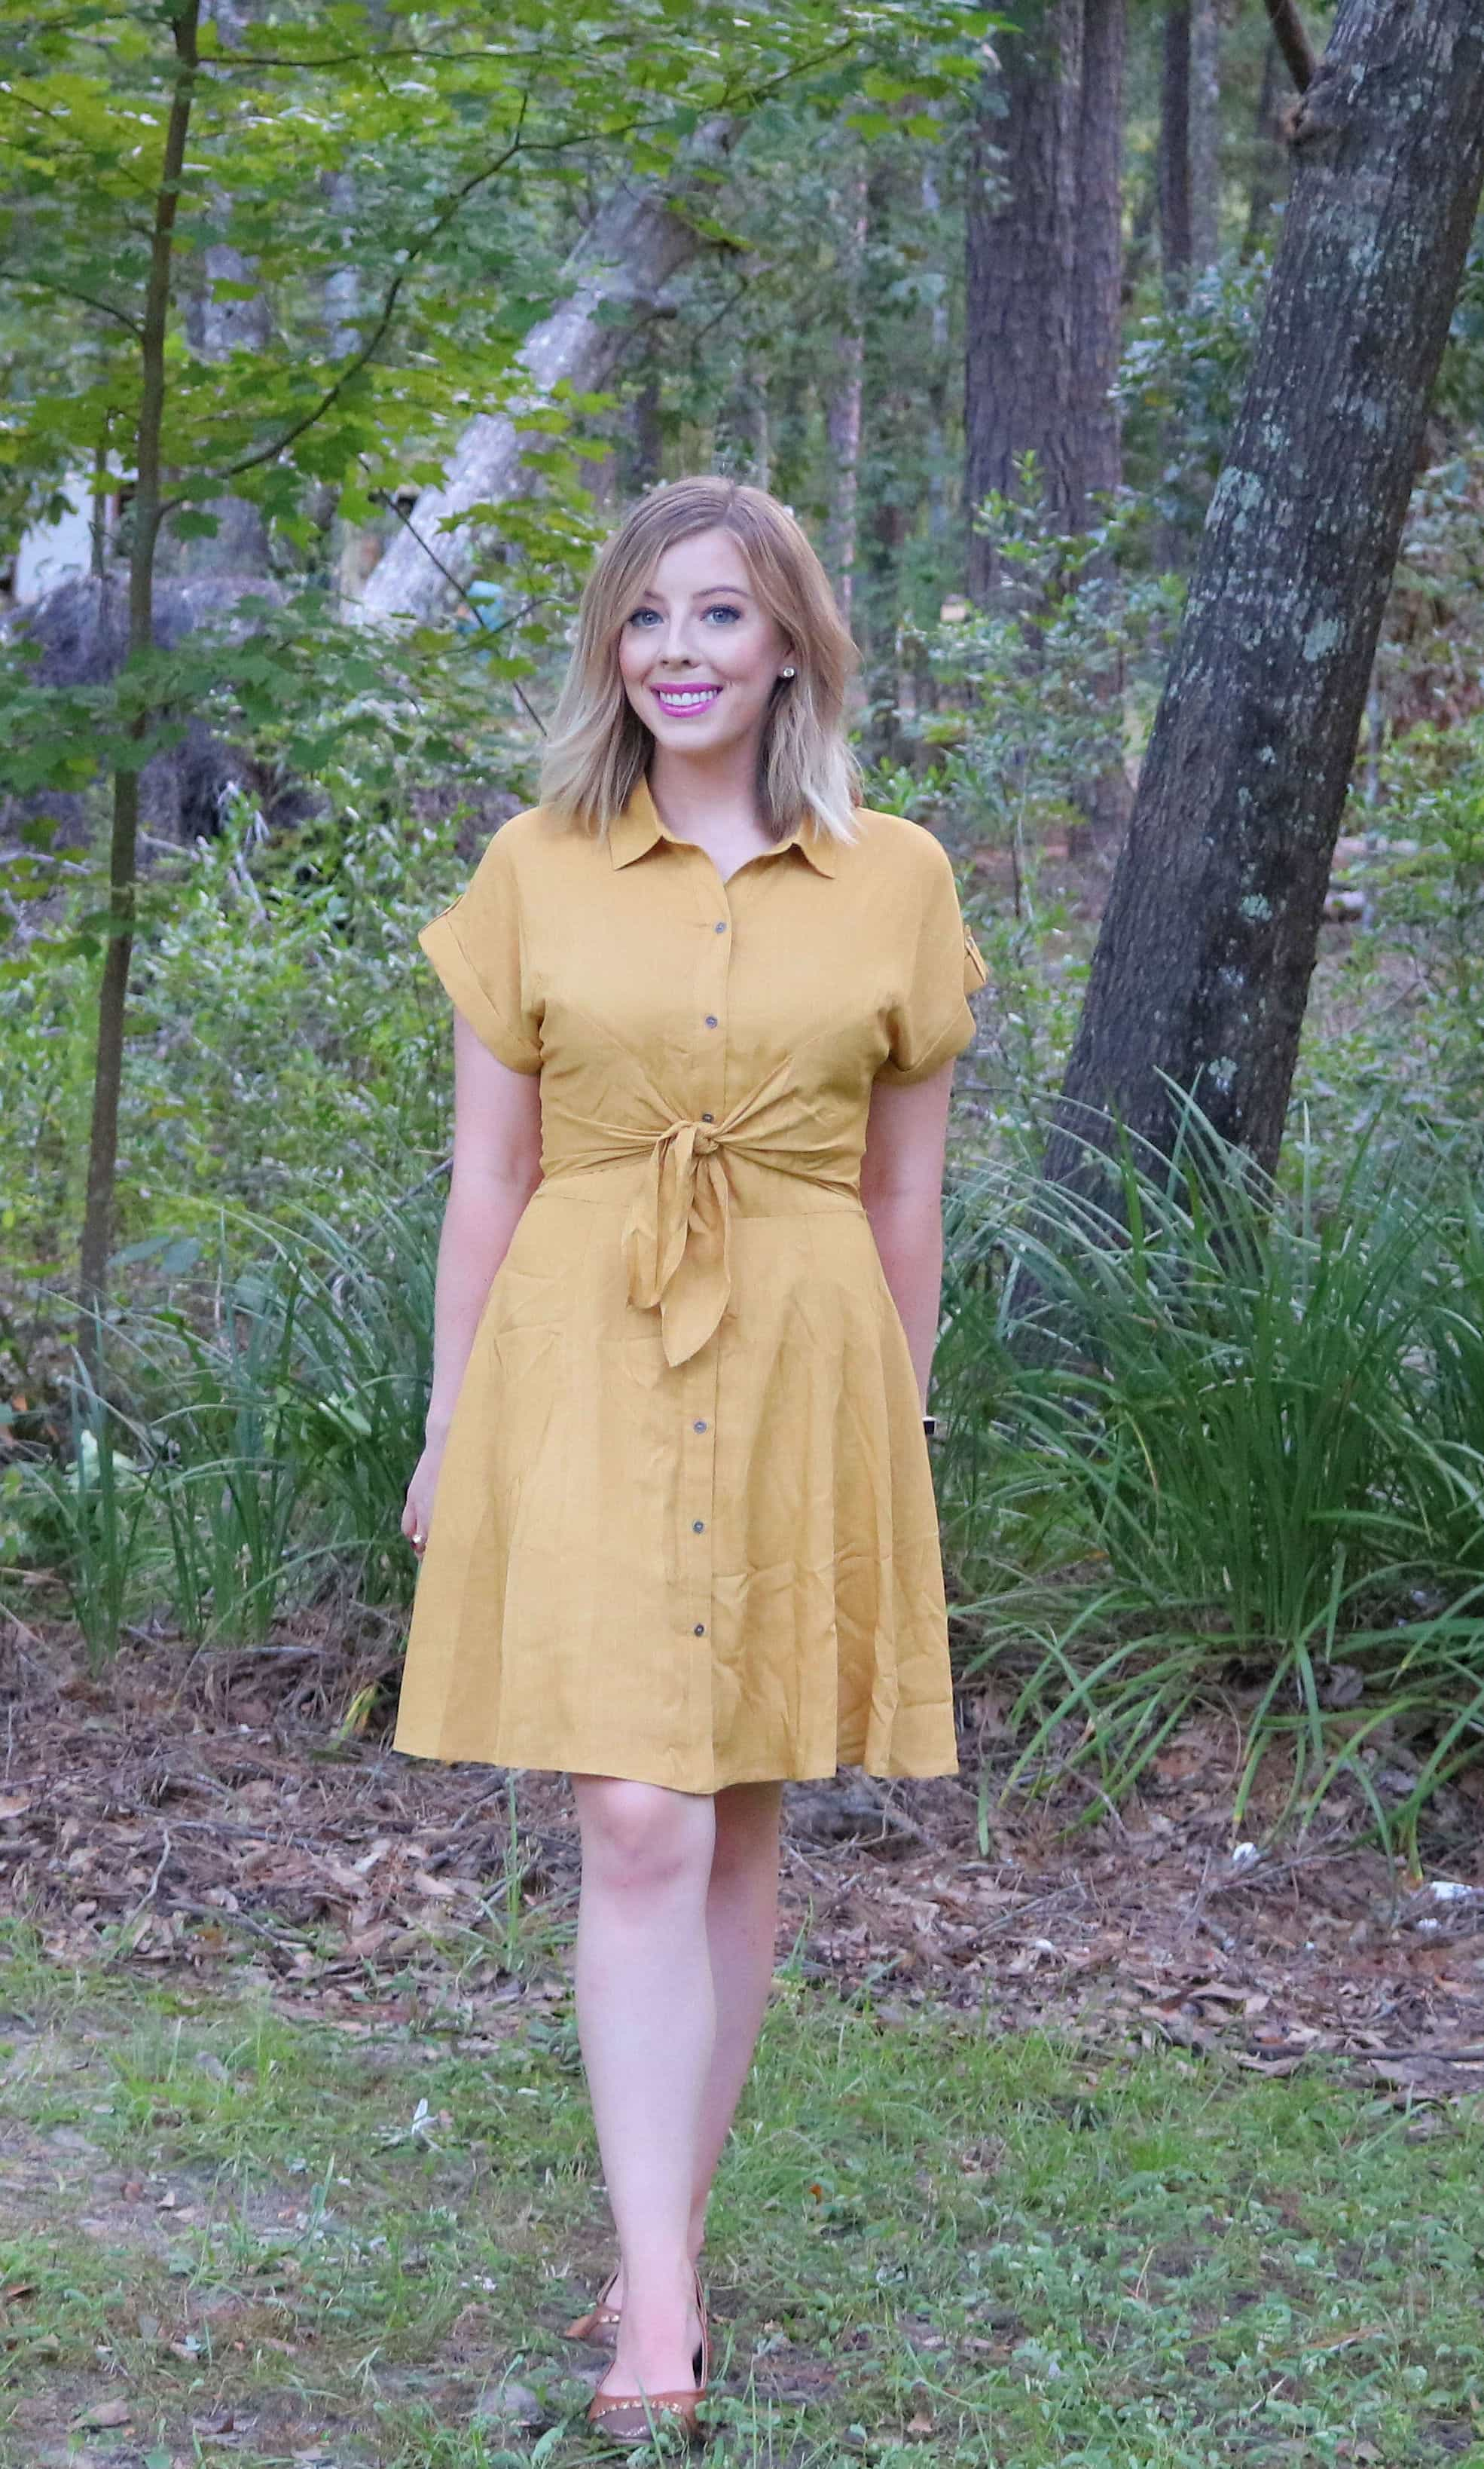 Transition your wardrobe with these Cute Summer to Fall Dresses from Bella Ella Boutique! Both cute and affordable, you'll love wearing these beautiful boutique dresses all season long! #summerdresses #falldresses #bellaellaboutique #boutiquedresses